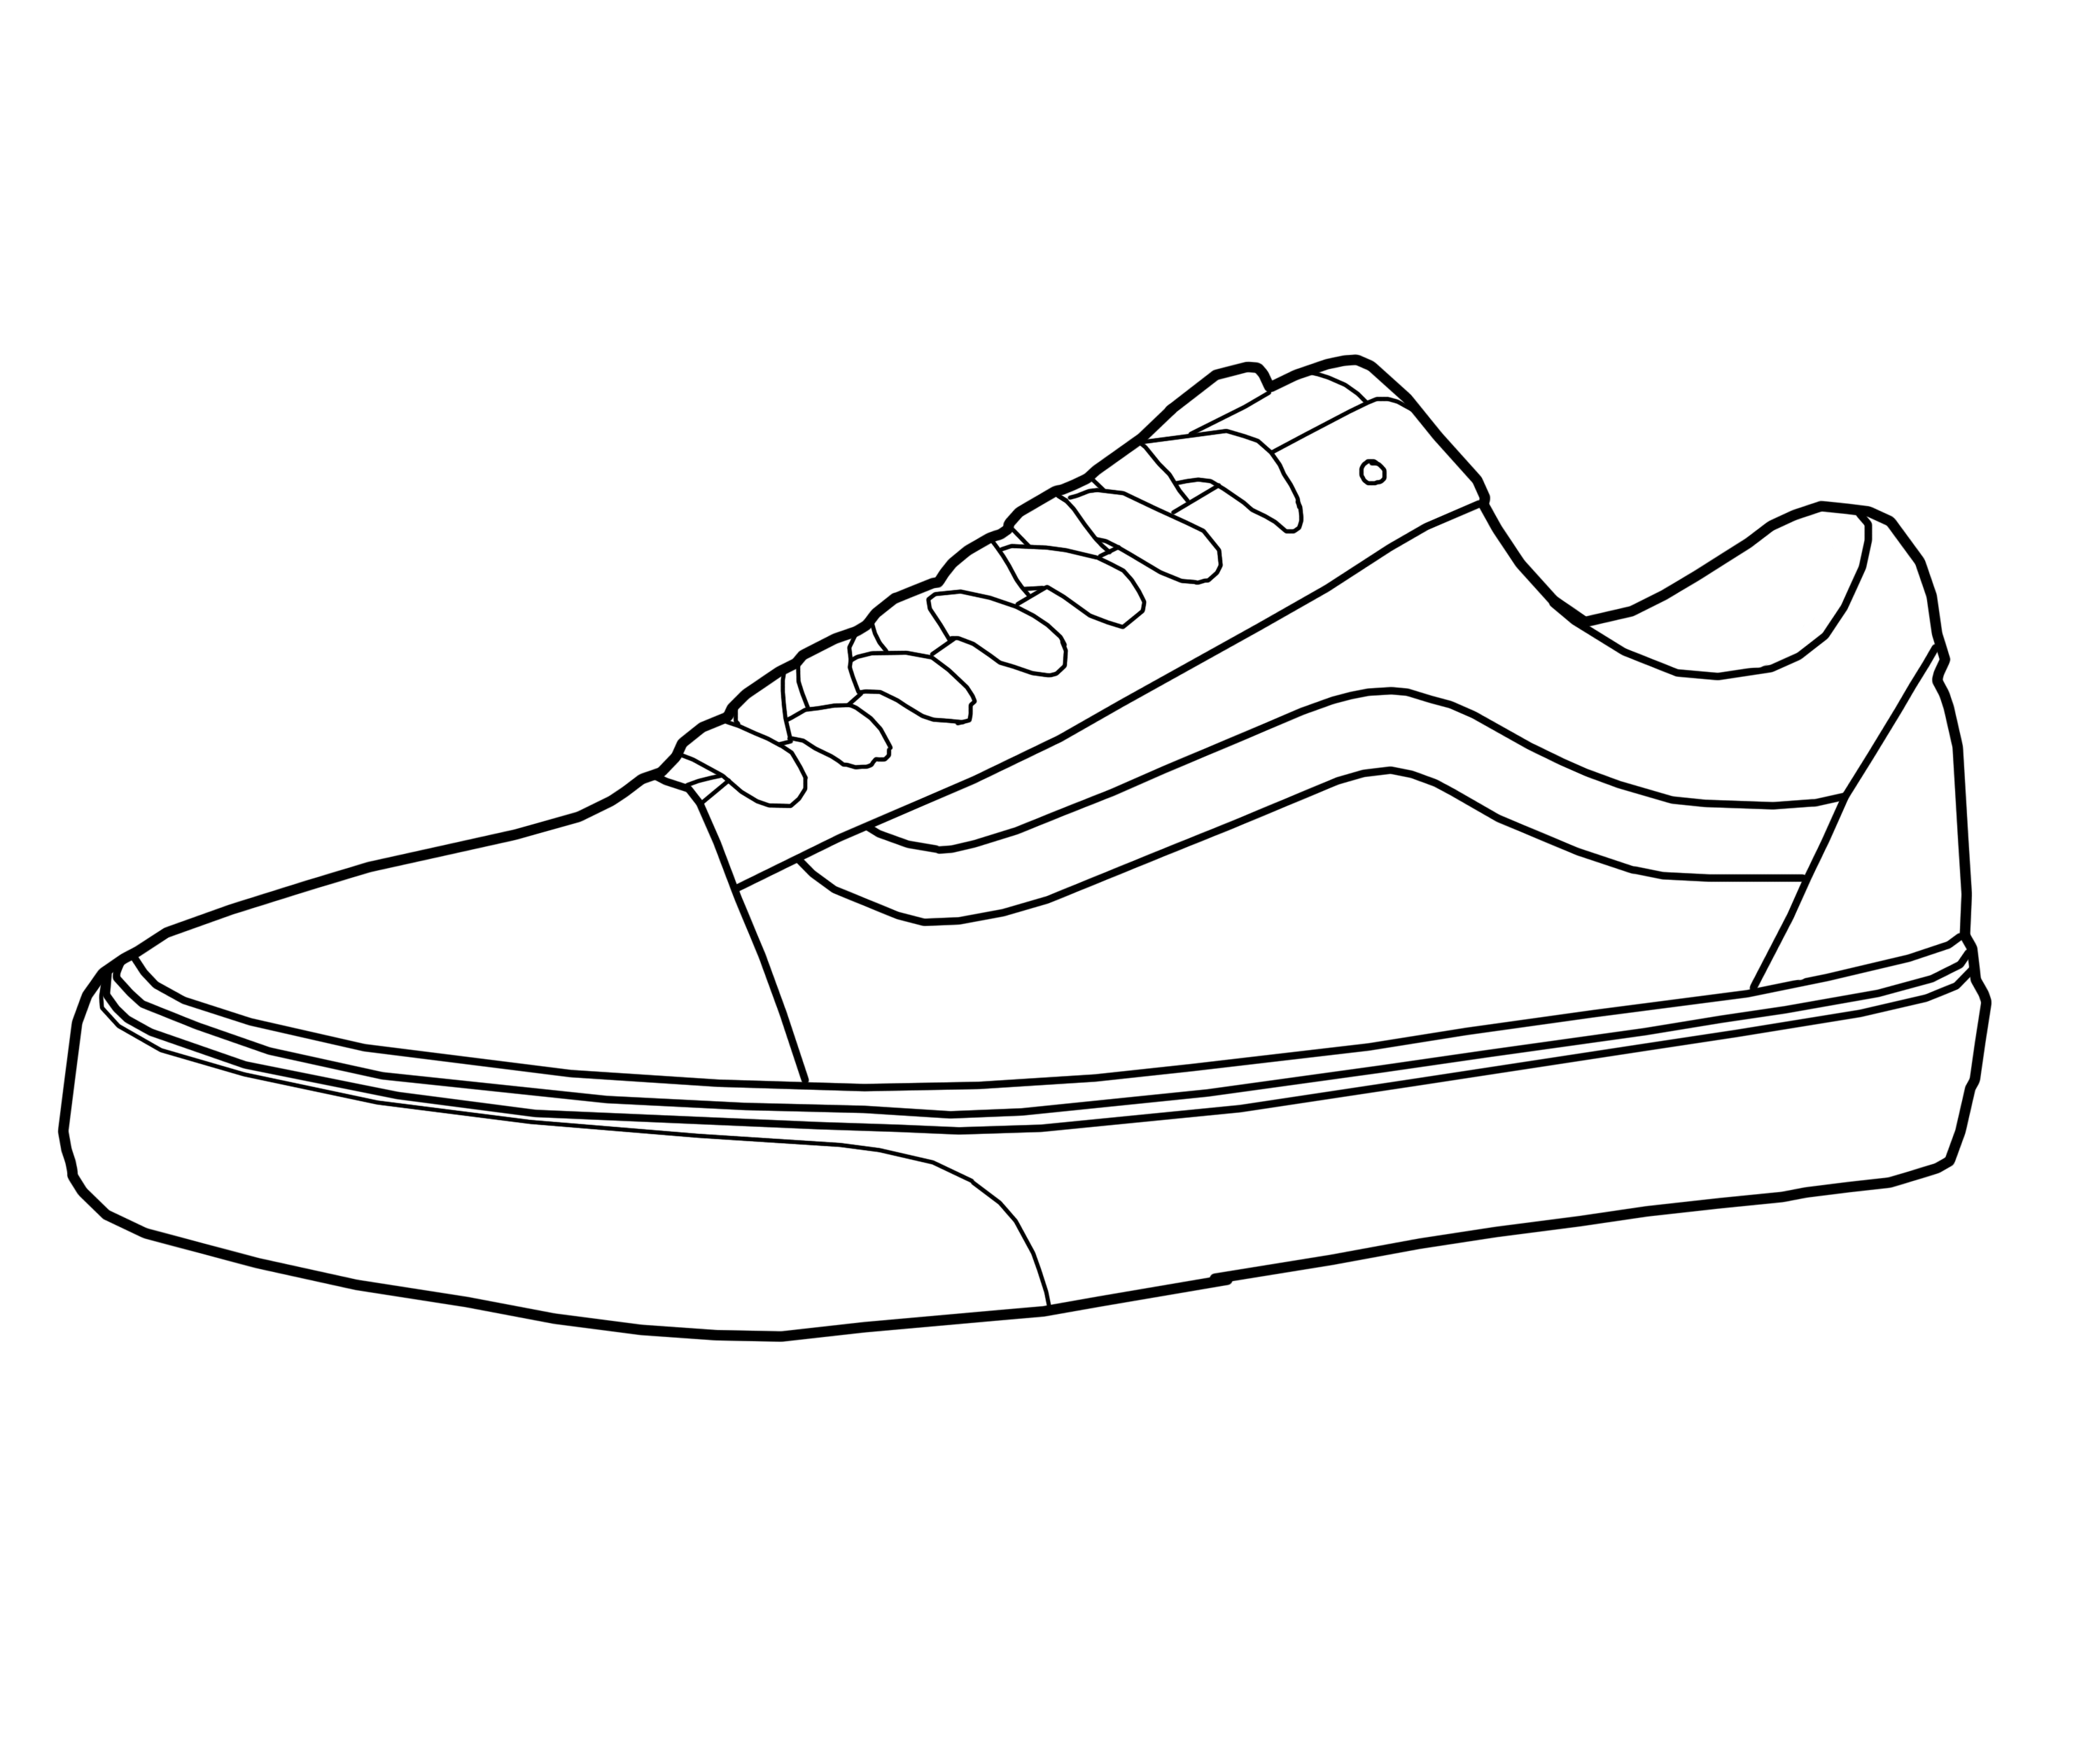 Drawn vans easy #14